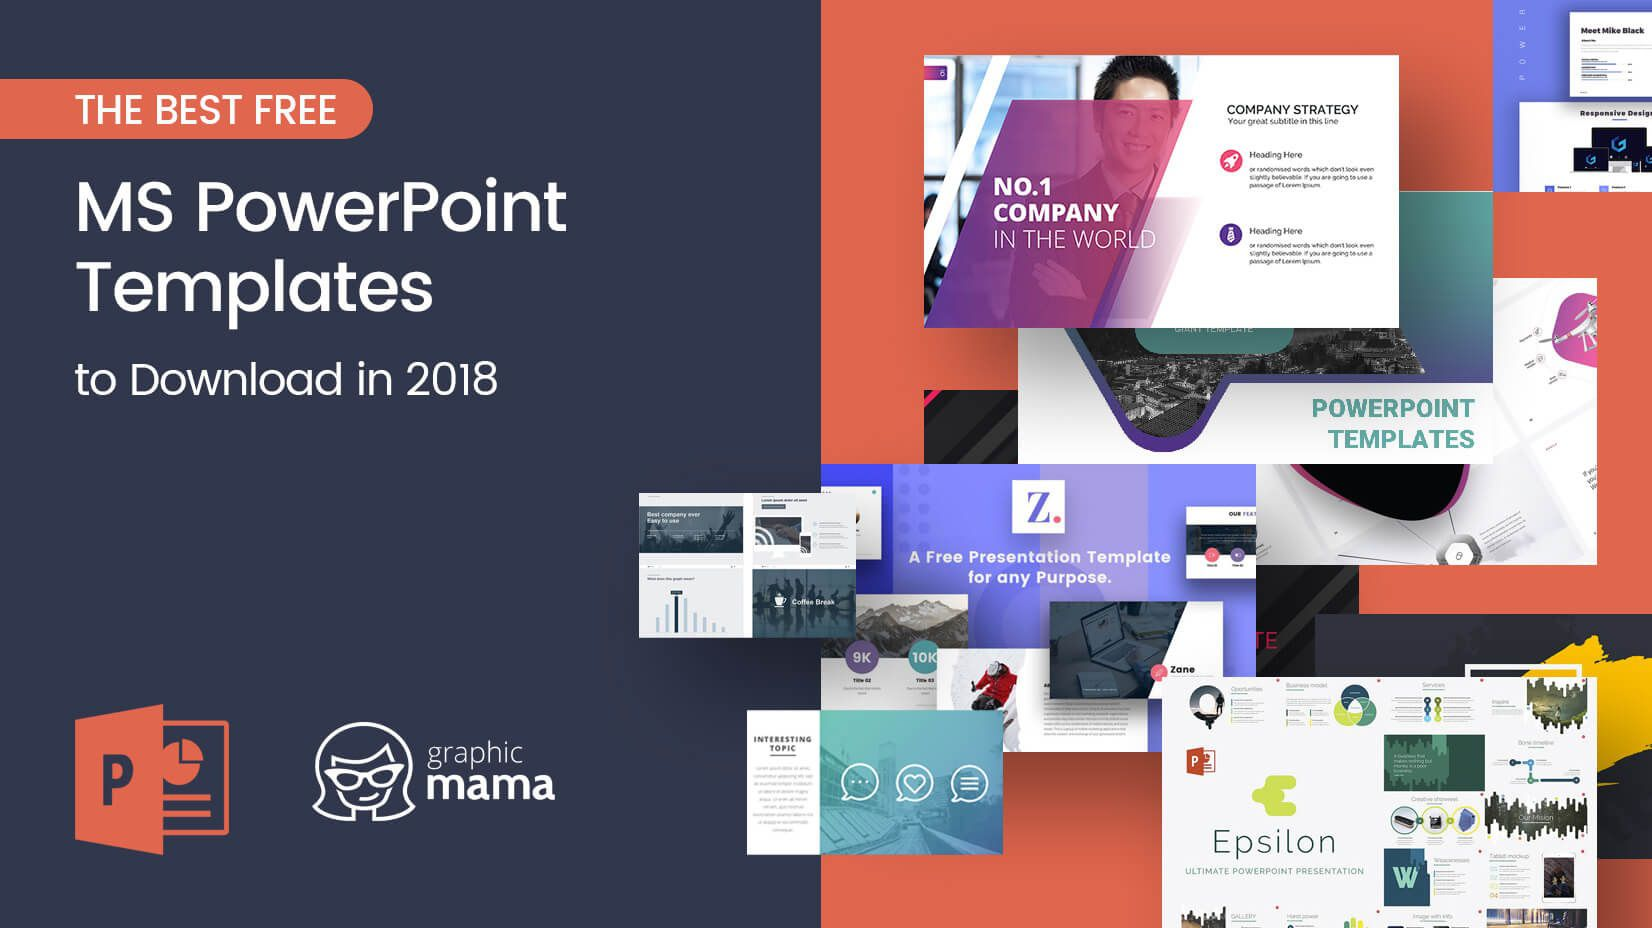 009 Unforgettable Free Download Ppt Template For Technical Presentation High Definition  Simple Project SampleFull